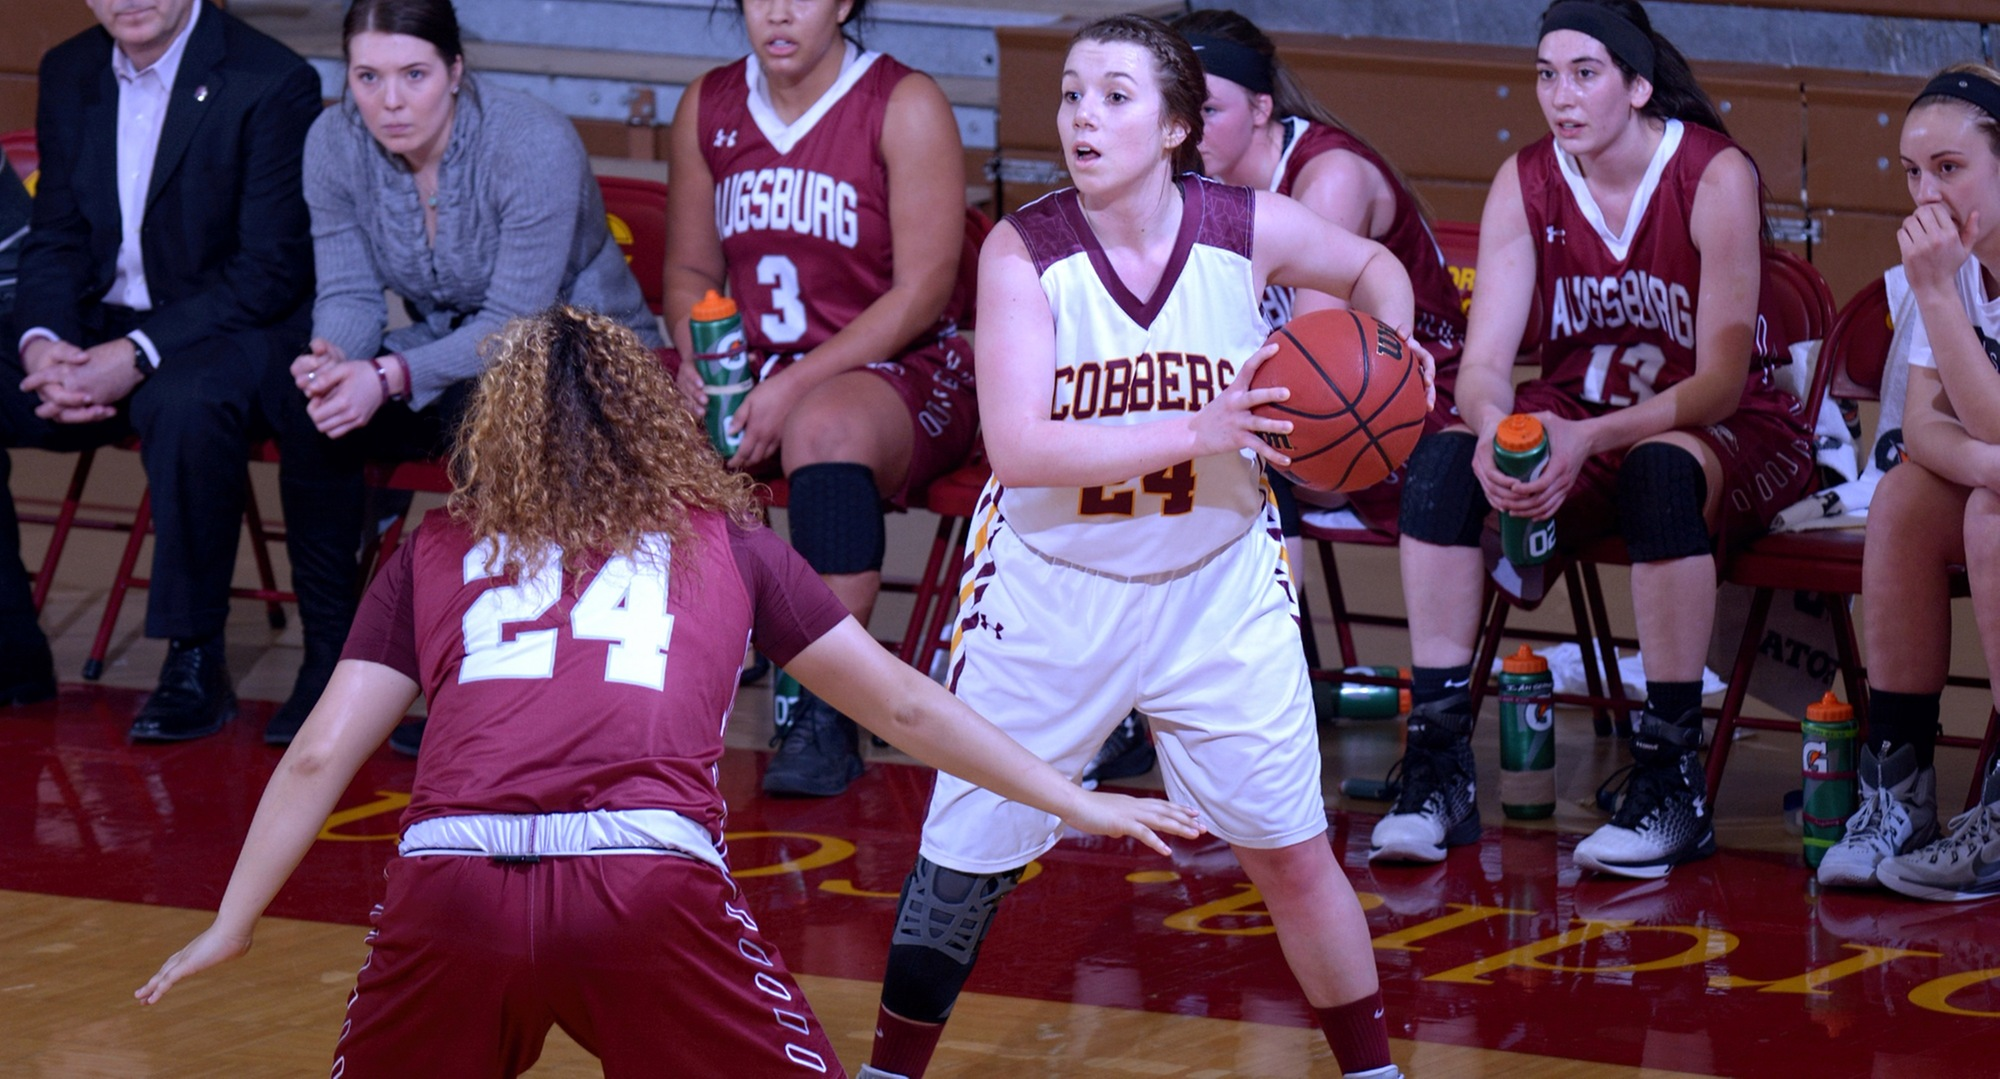 Junior Casidy Rahman looks to make a pass inside during the Cobbers' game with Augsburg. She finished with 11 points, five rebounds and two steals.